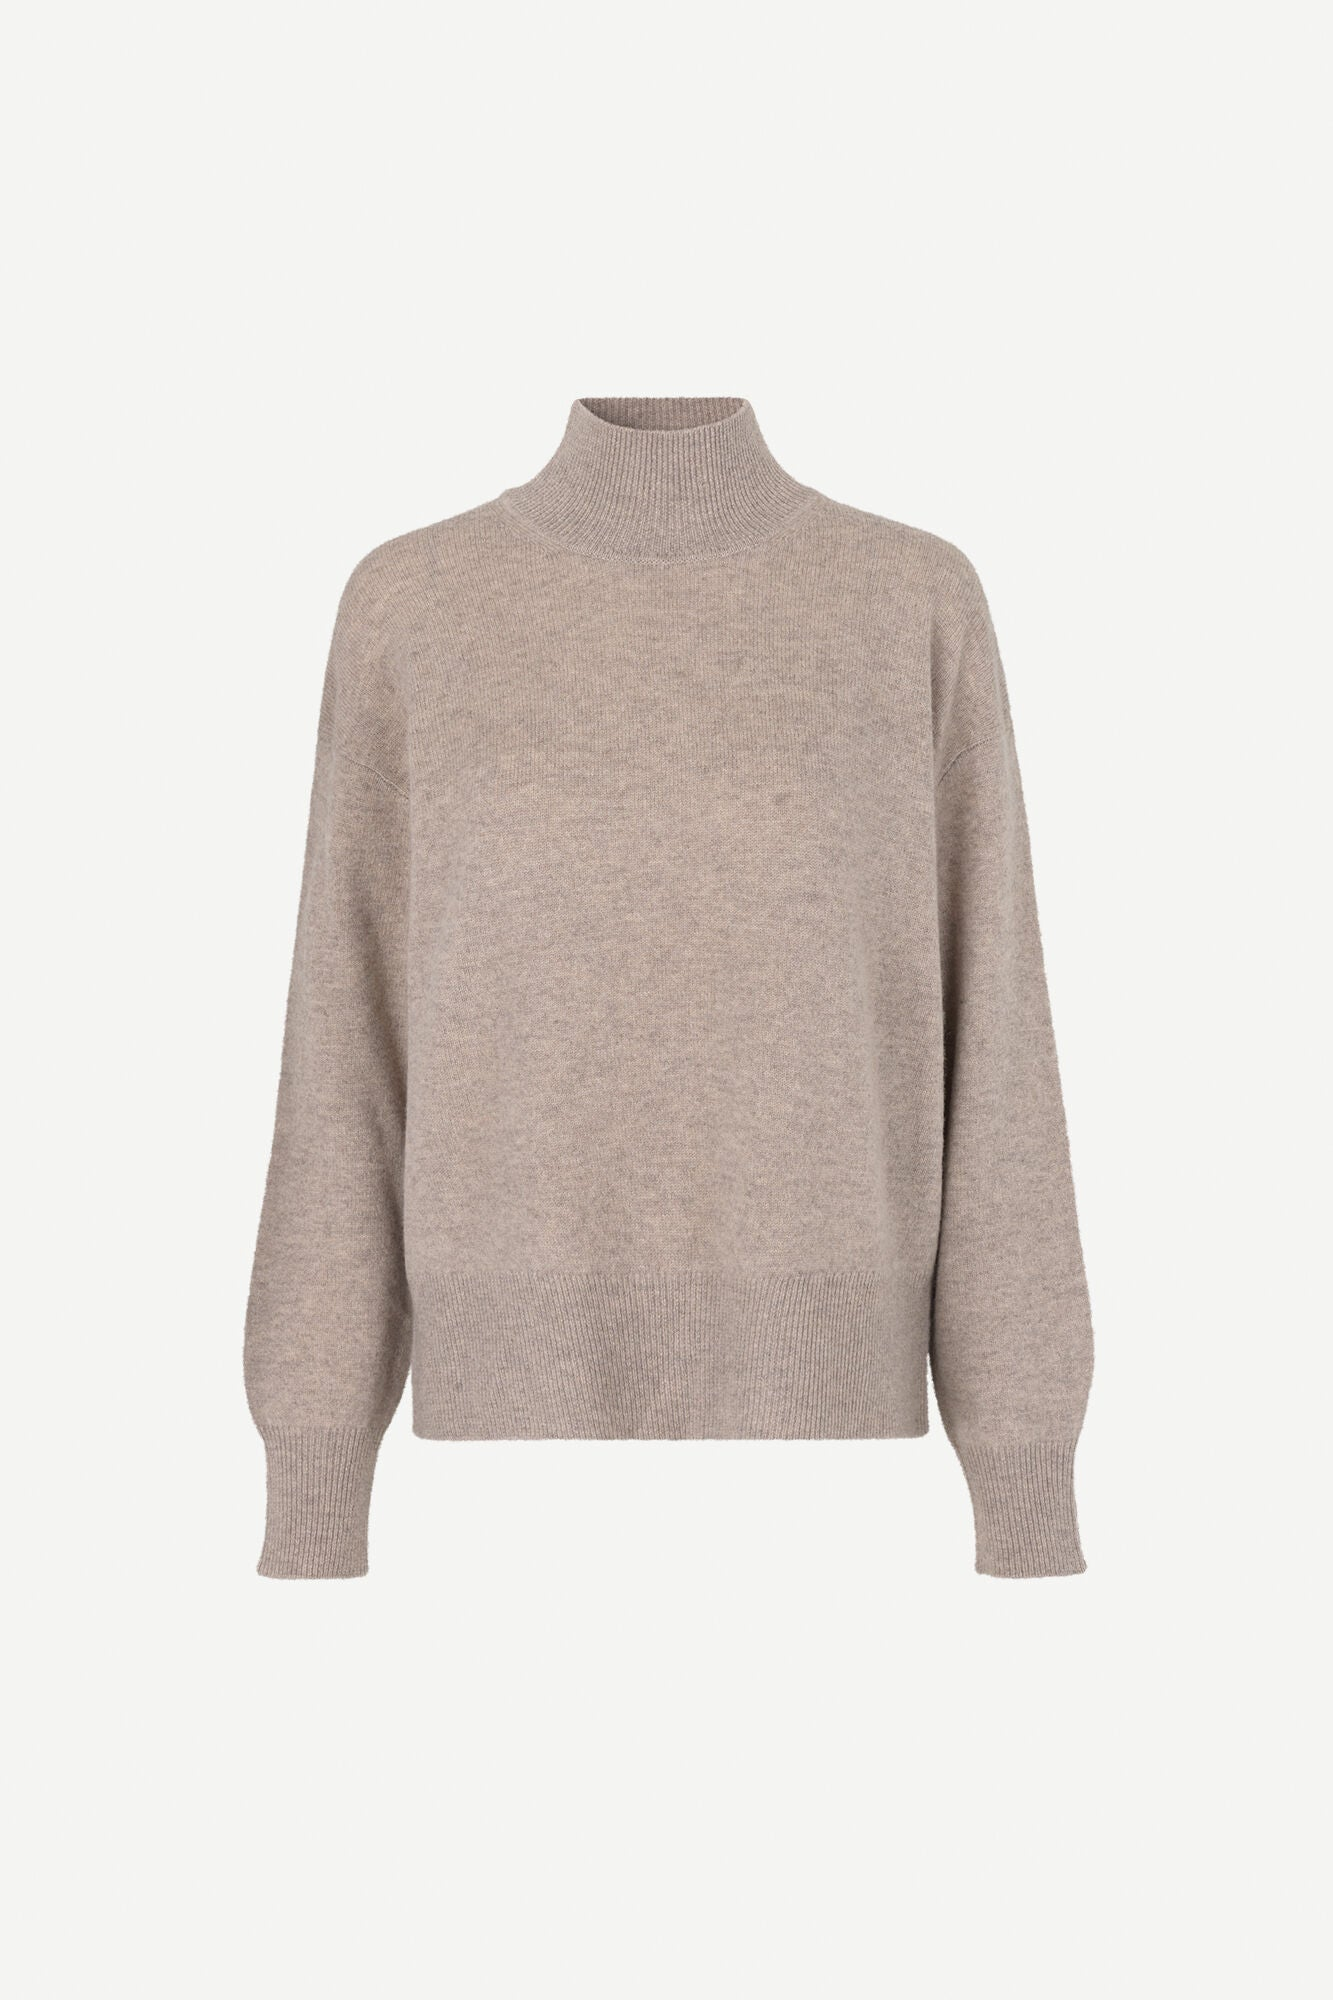 WOOL KNITTED TURTLENECK SWEATER IN WARM GREY